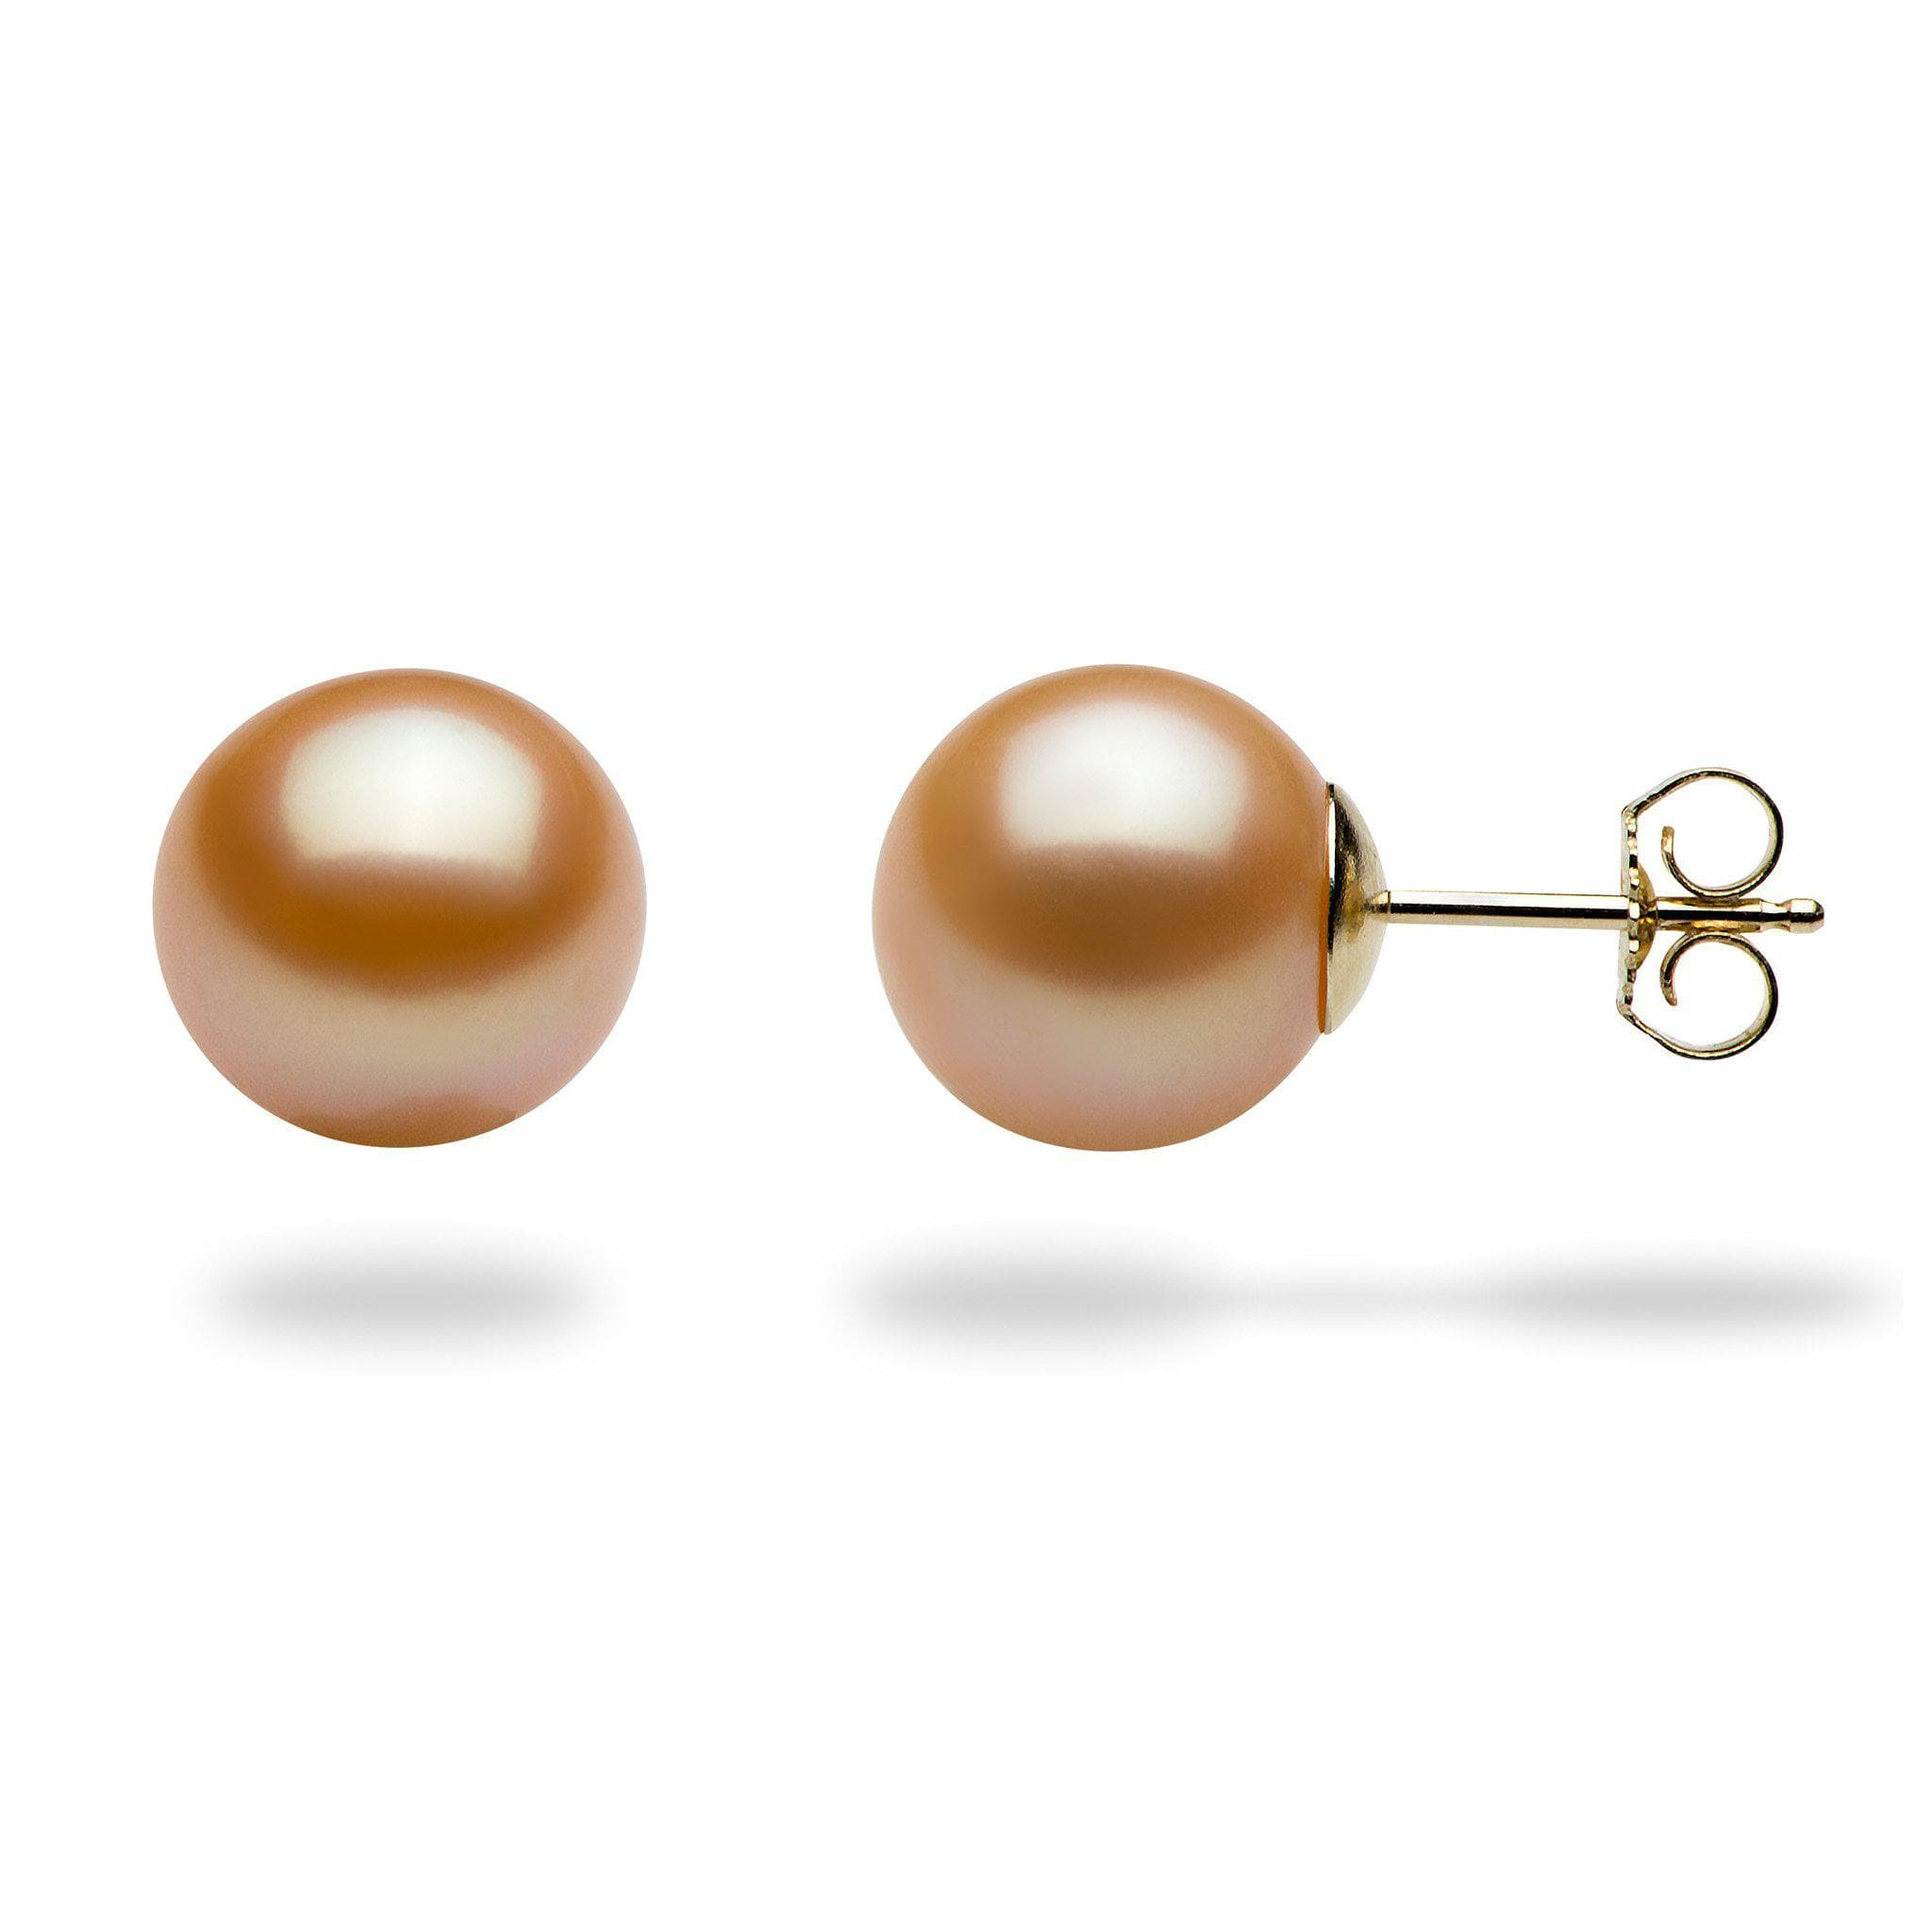 classic jewerly earrings collections gemstone mauktika real jewellery timeless pearl the shop silver ko online sia stud